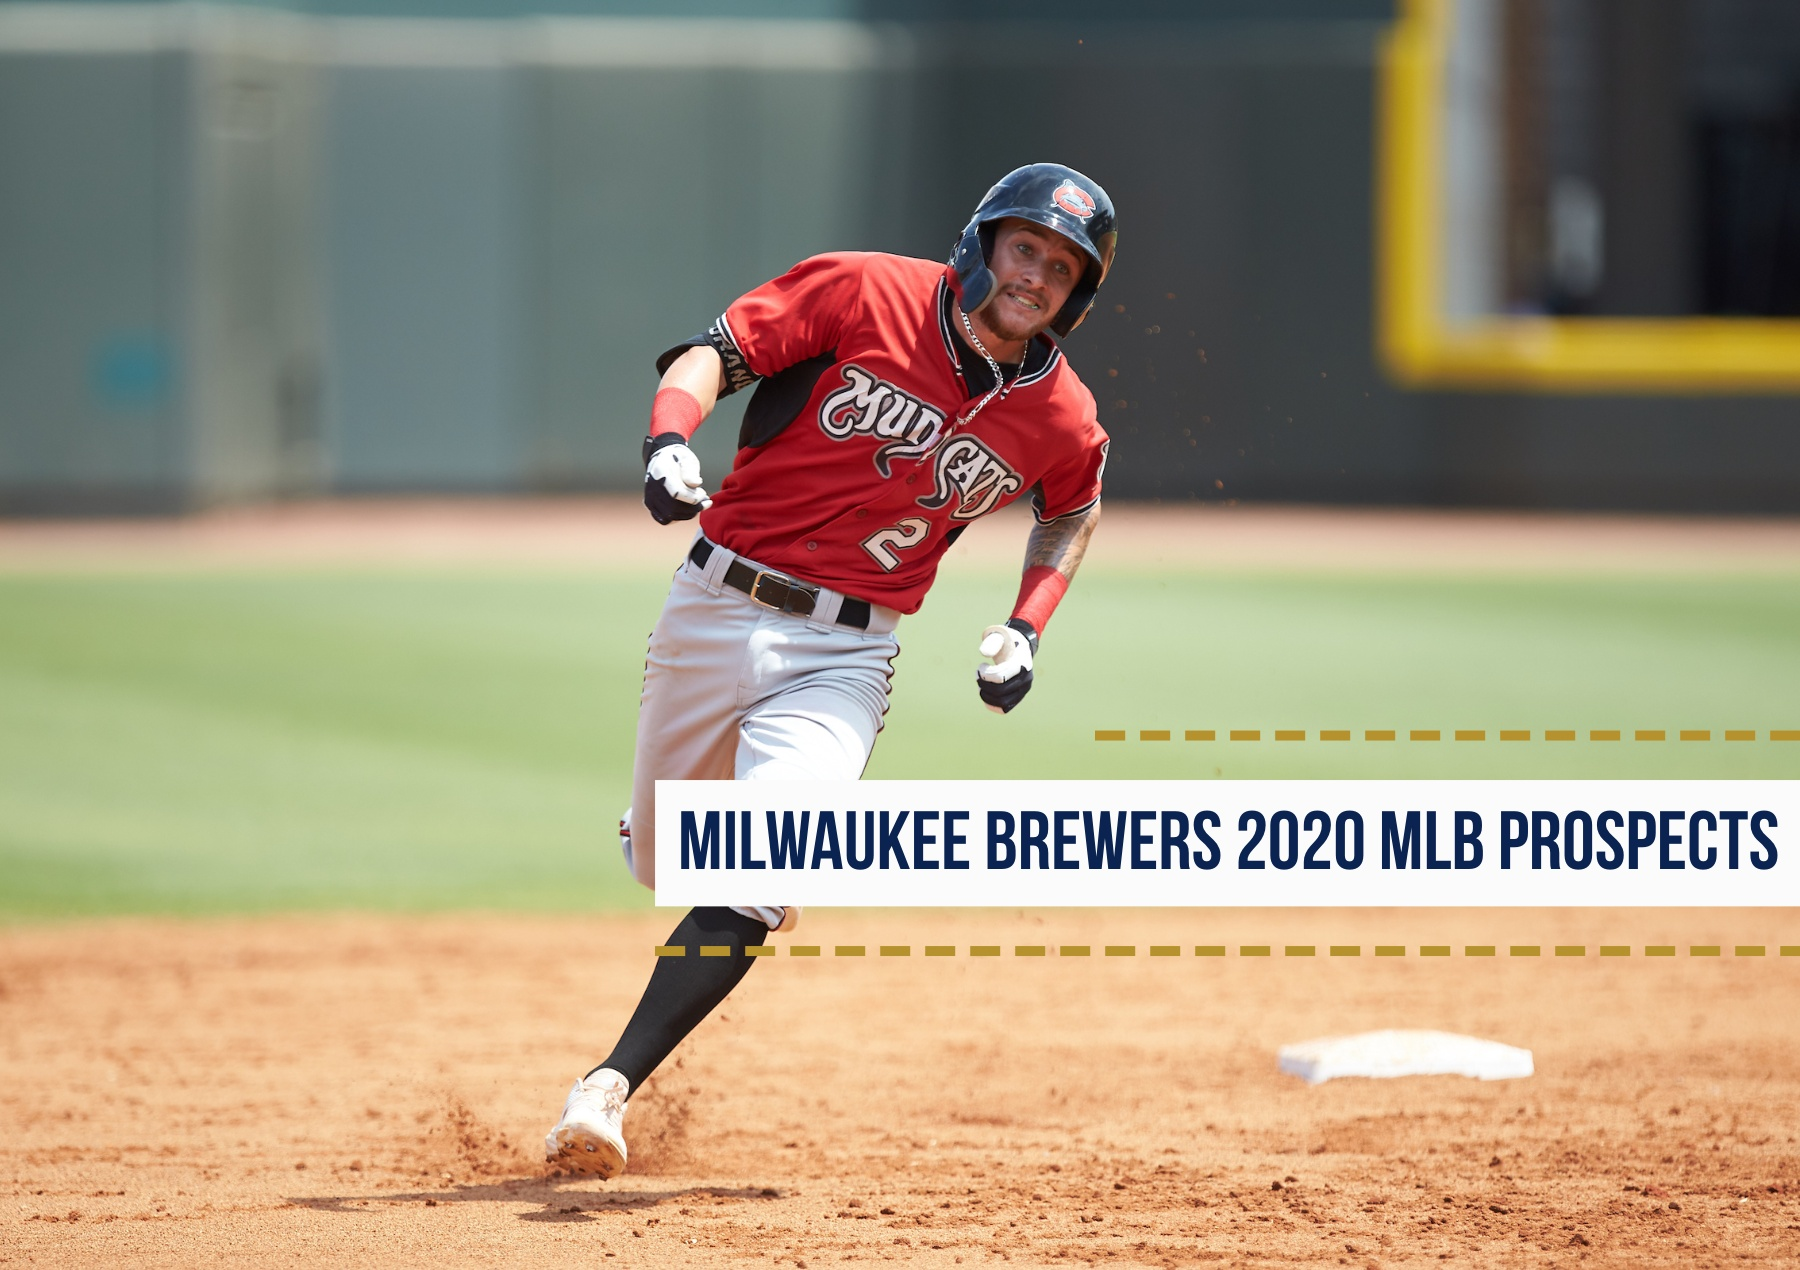 2020 Milwaukee Brewers Top 10 MLB Prospects